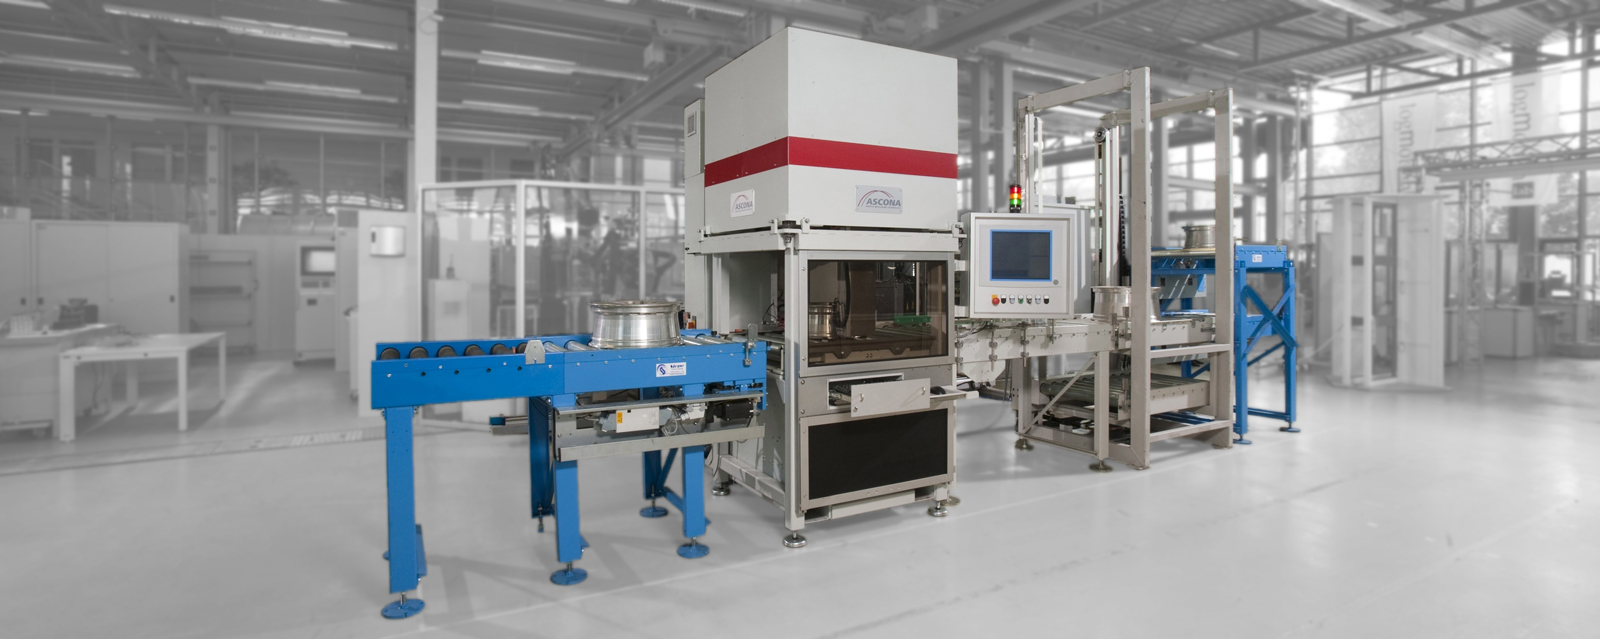 Quality control in the manufacturing cycle